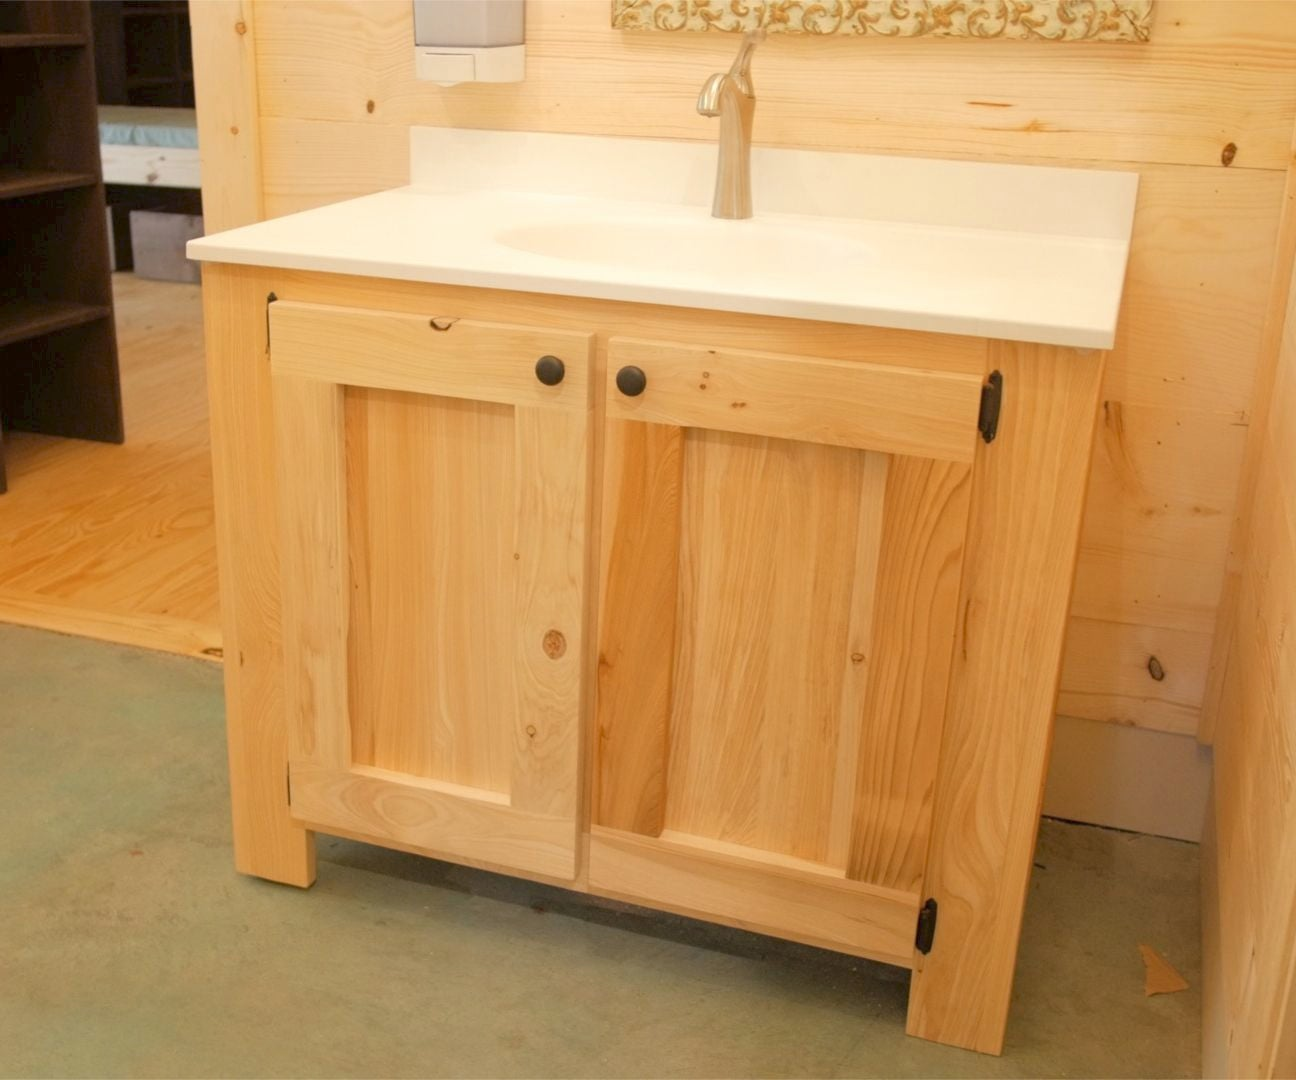 Diy Rustic Bathroom Vanities How To Build Woodworking 14 Steps With Pictures Instructables